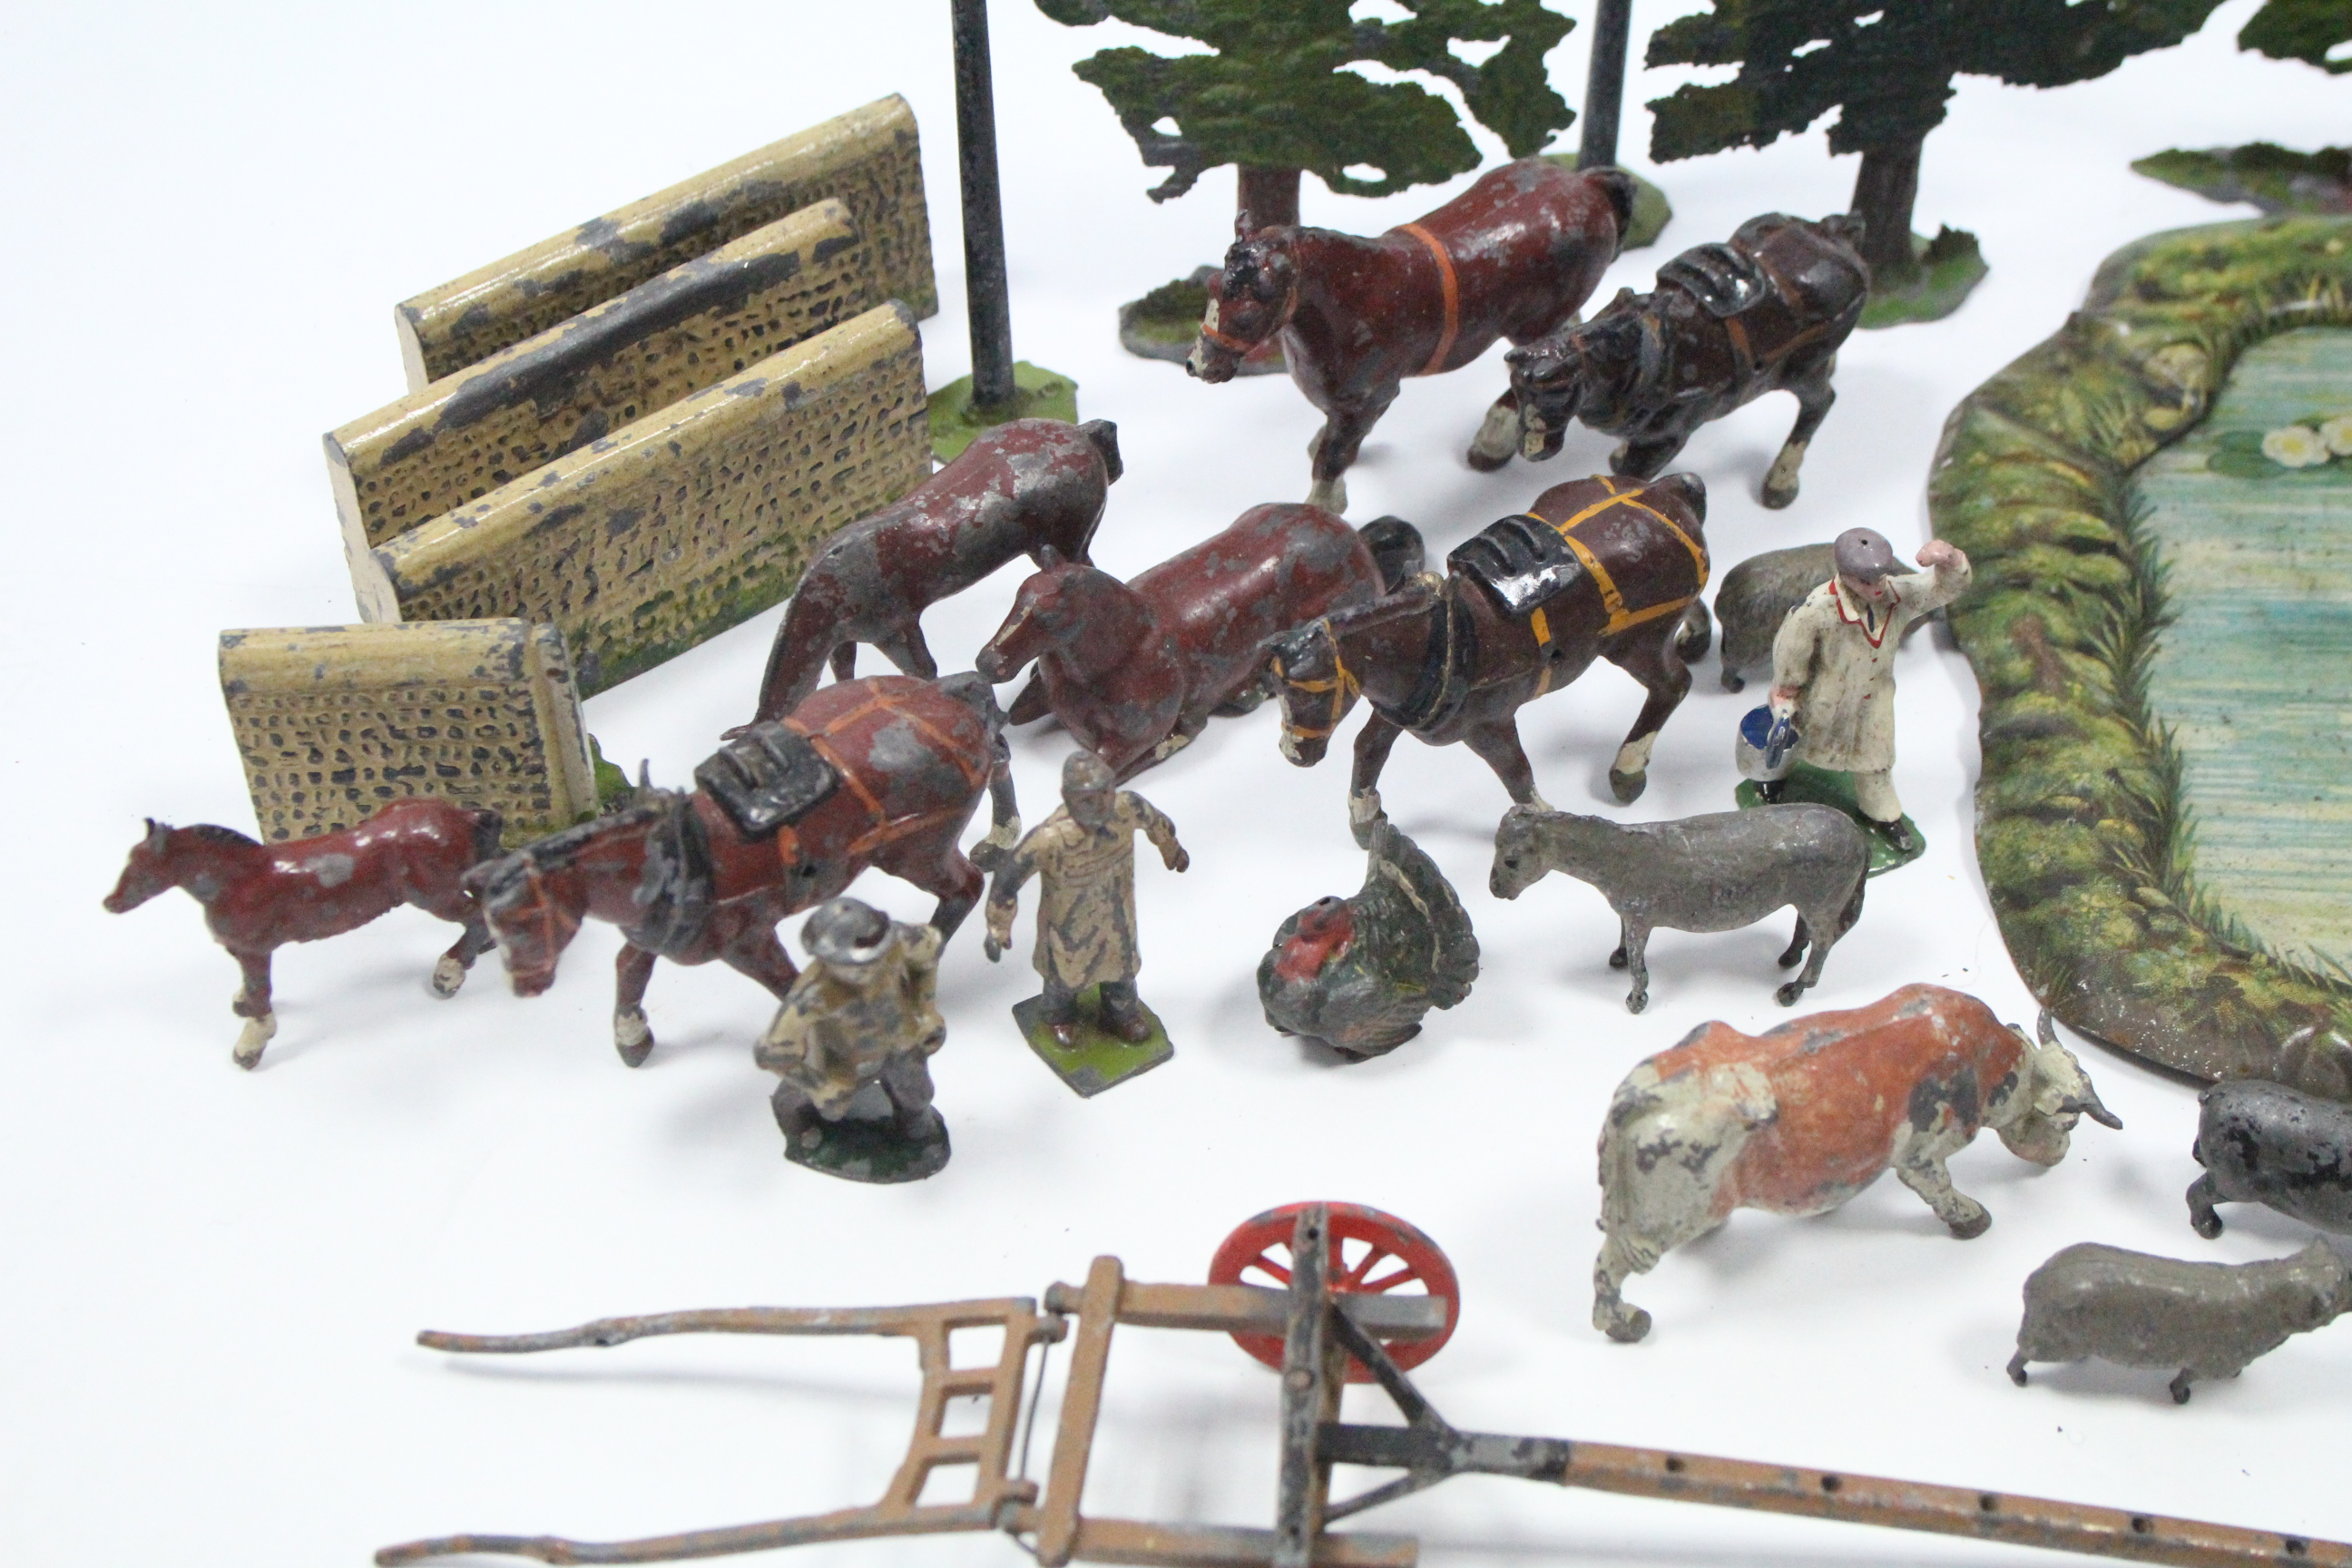 Lot 281 - A QUANTITY OF BRITAINS PAINTED LEAD FARM MODELS INCLUDING FARMERS, MACHINER, TREES, ETC., all un-